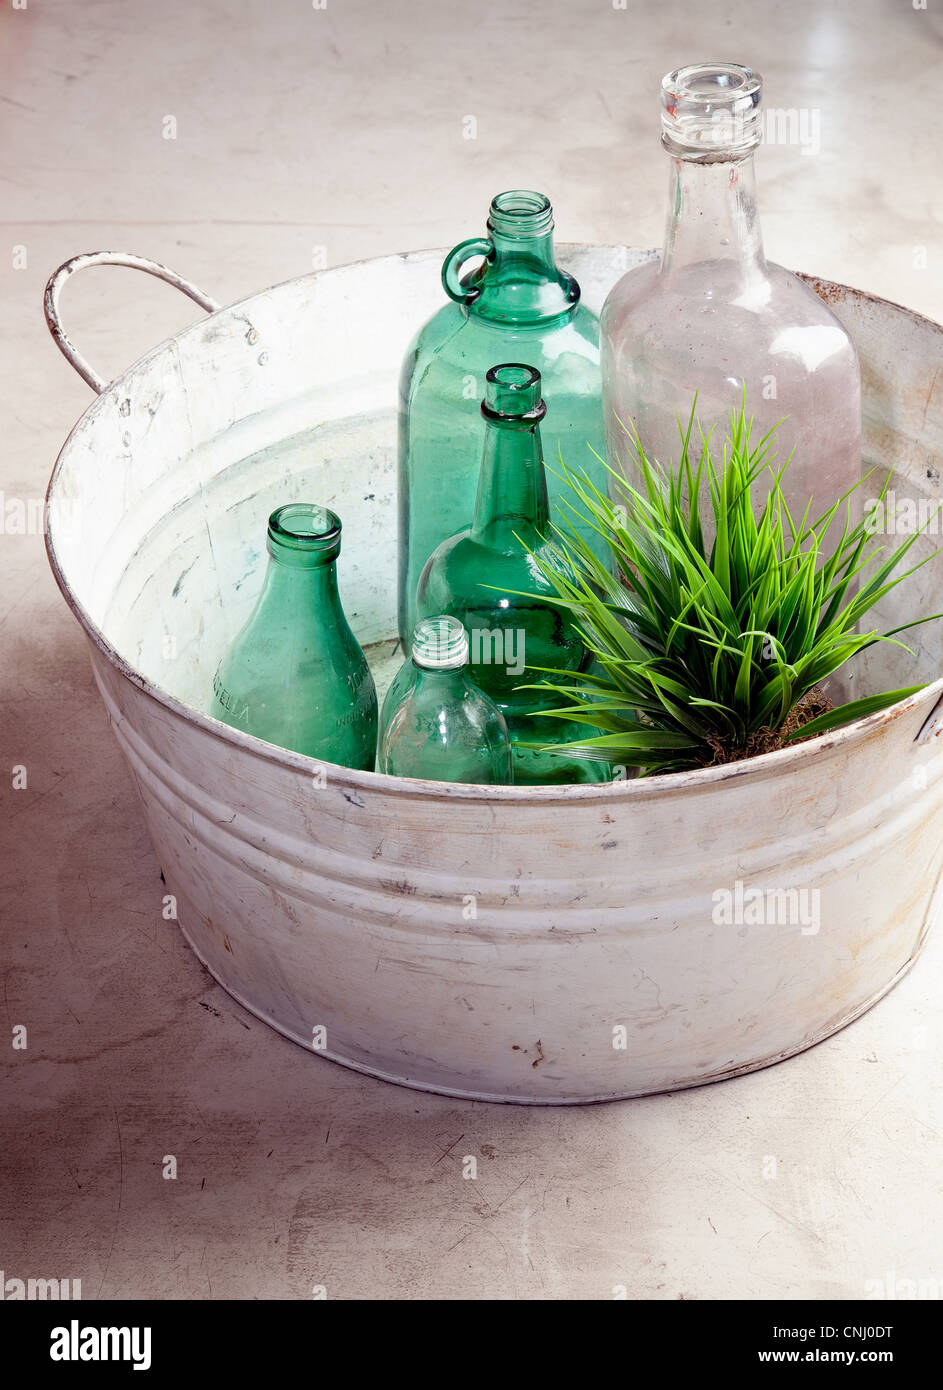 Bottles and plant in an old tub - Stock Image